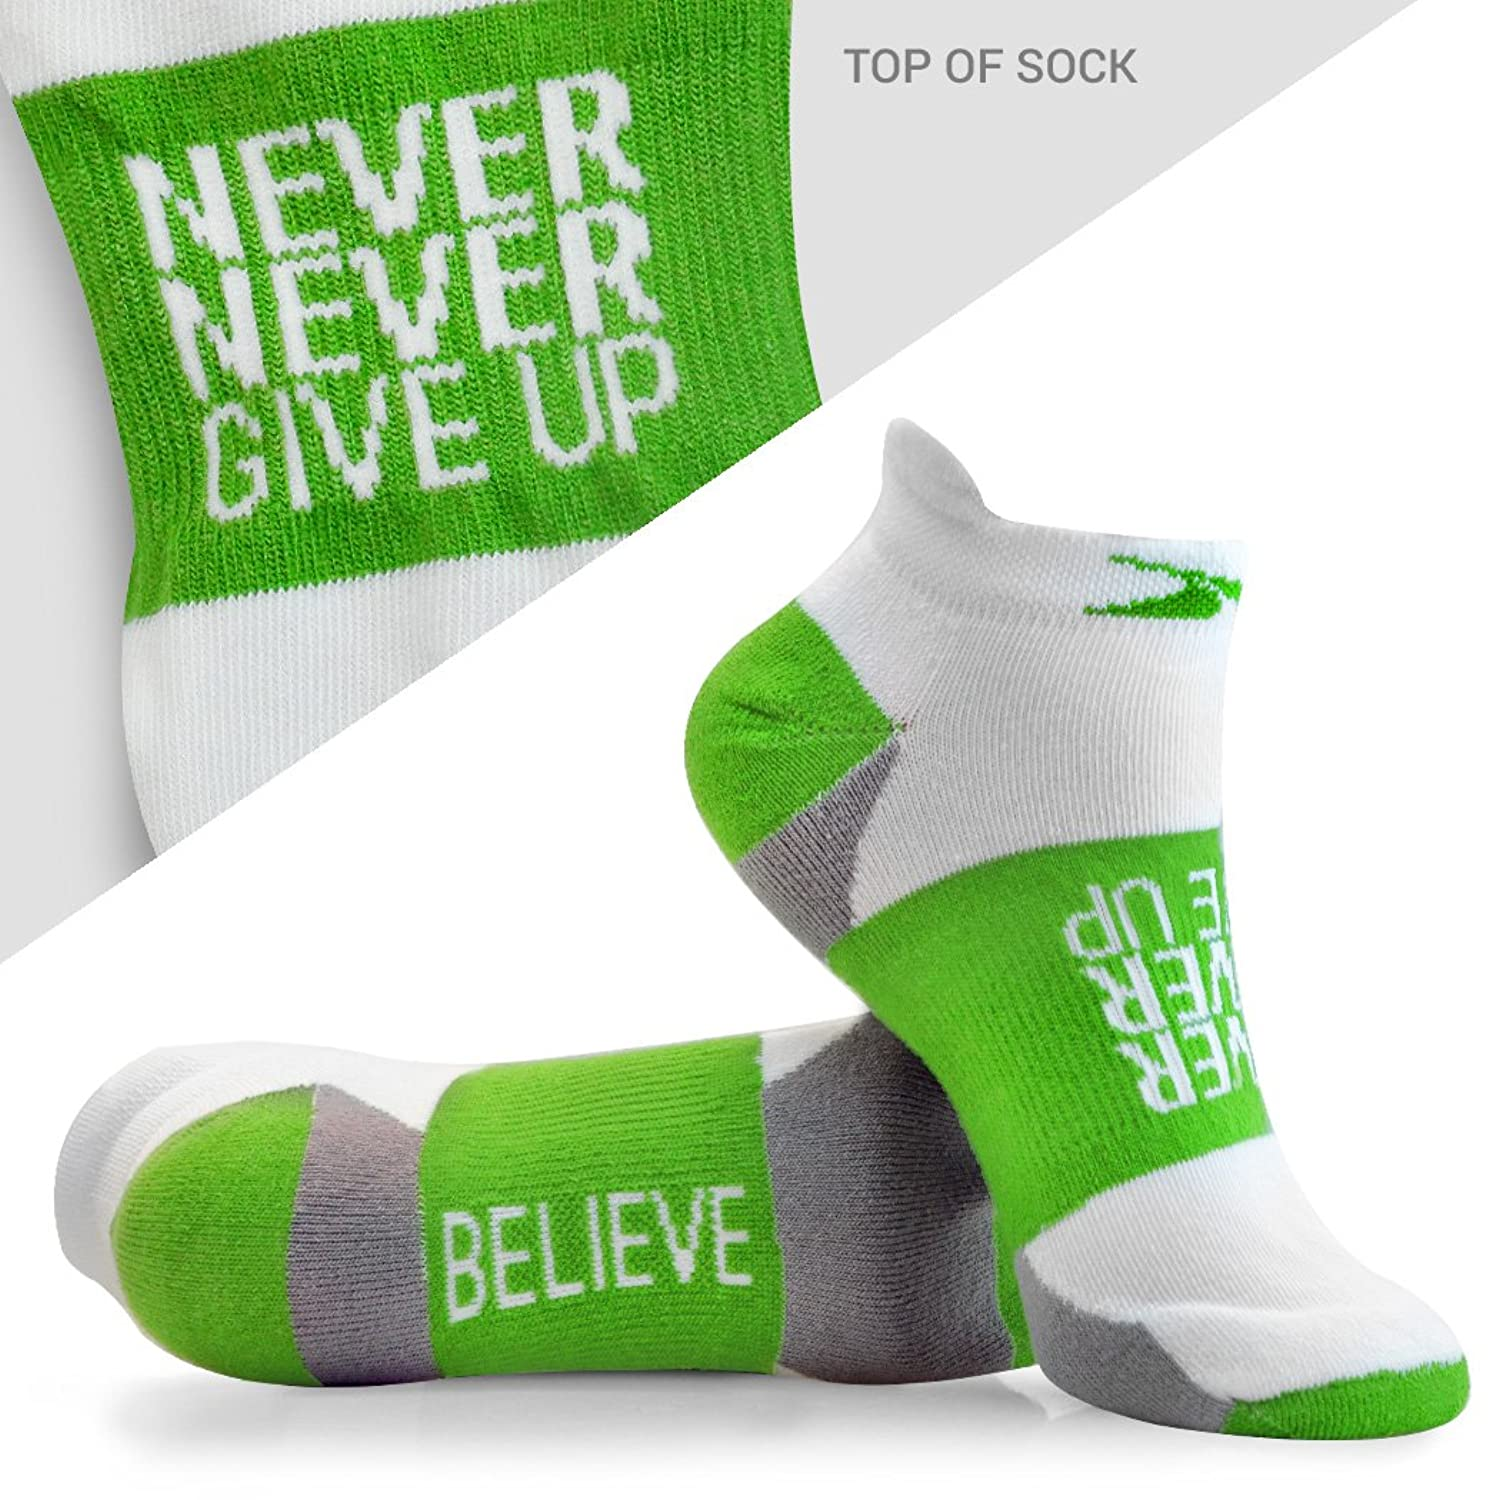 Gone For a RUN Good Karma Inspirational Athletic Running Socks - One Size Fits Most - Set of 3 Pairs - Multicolored